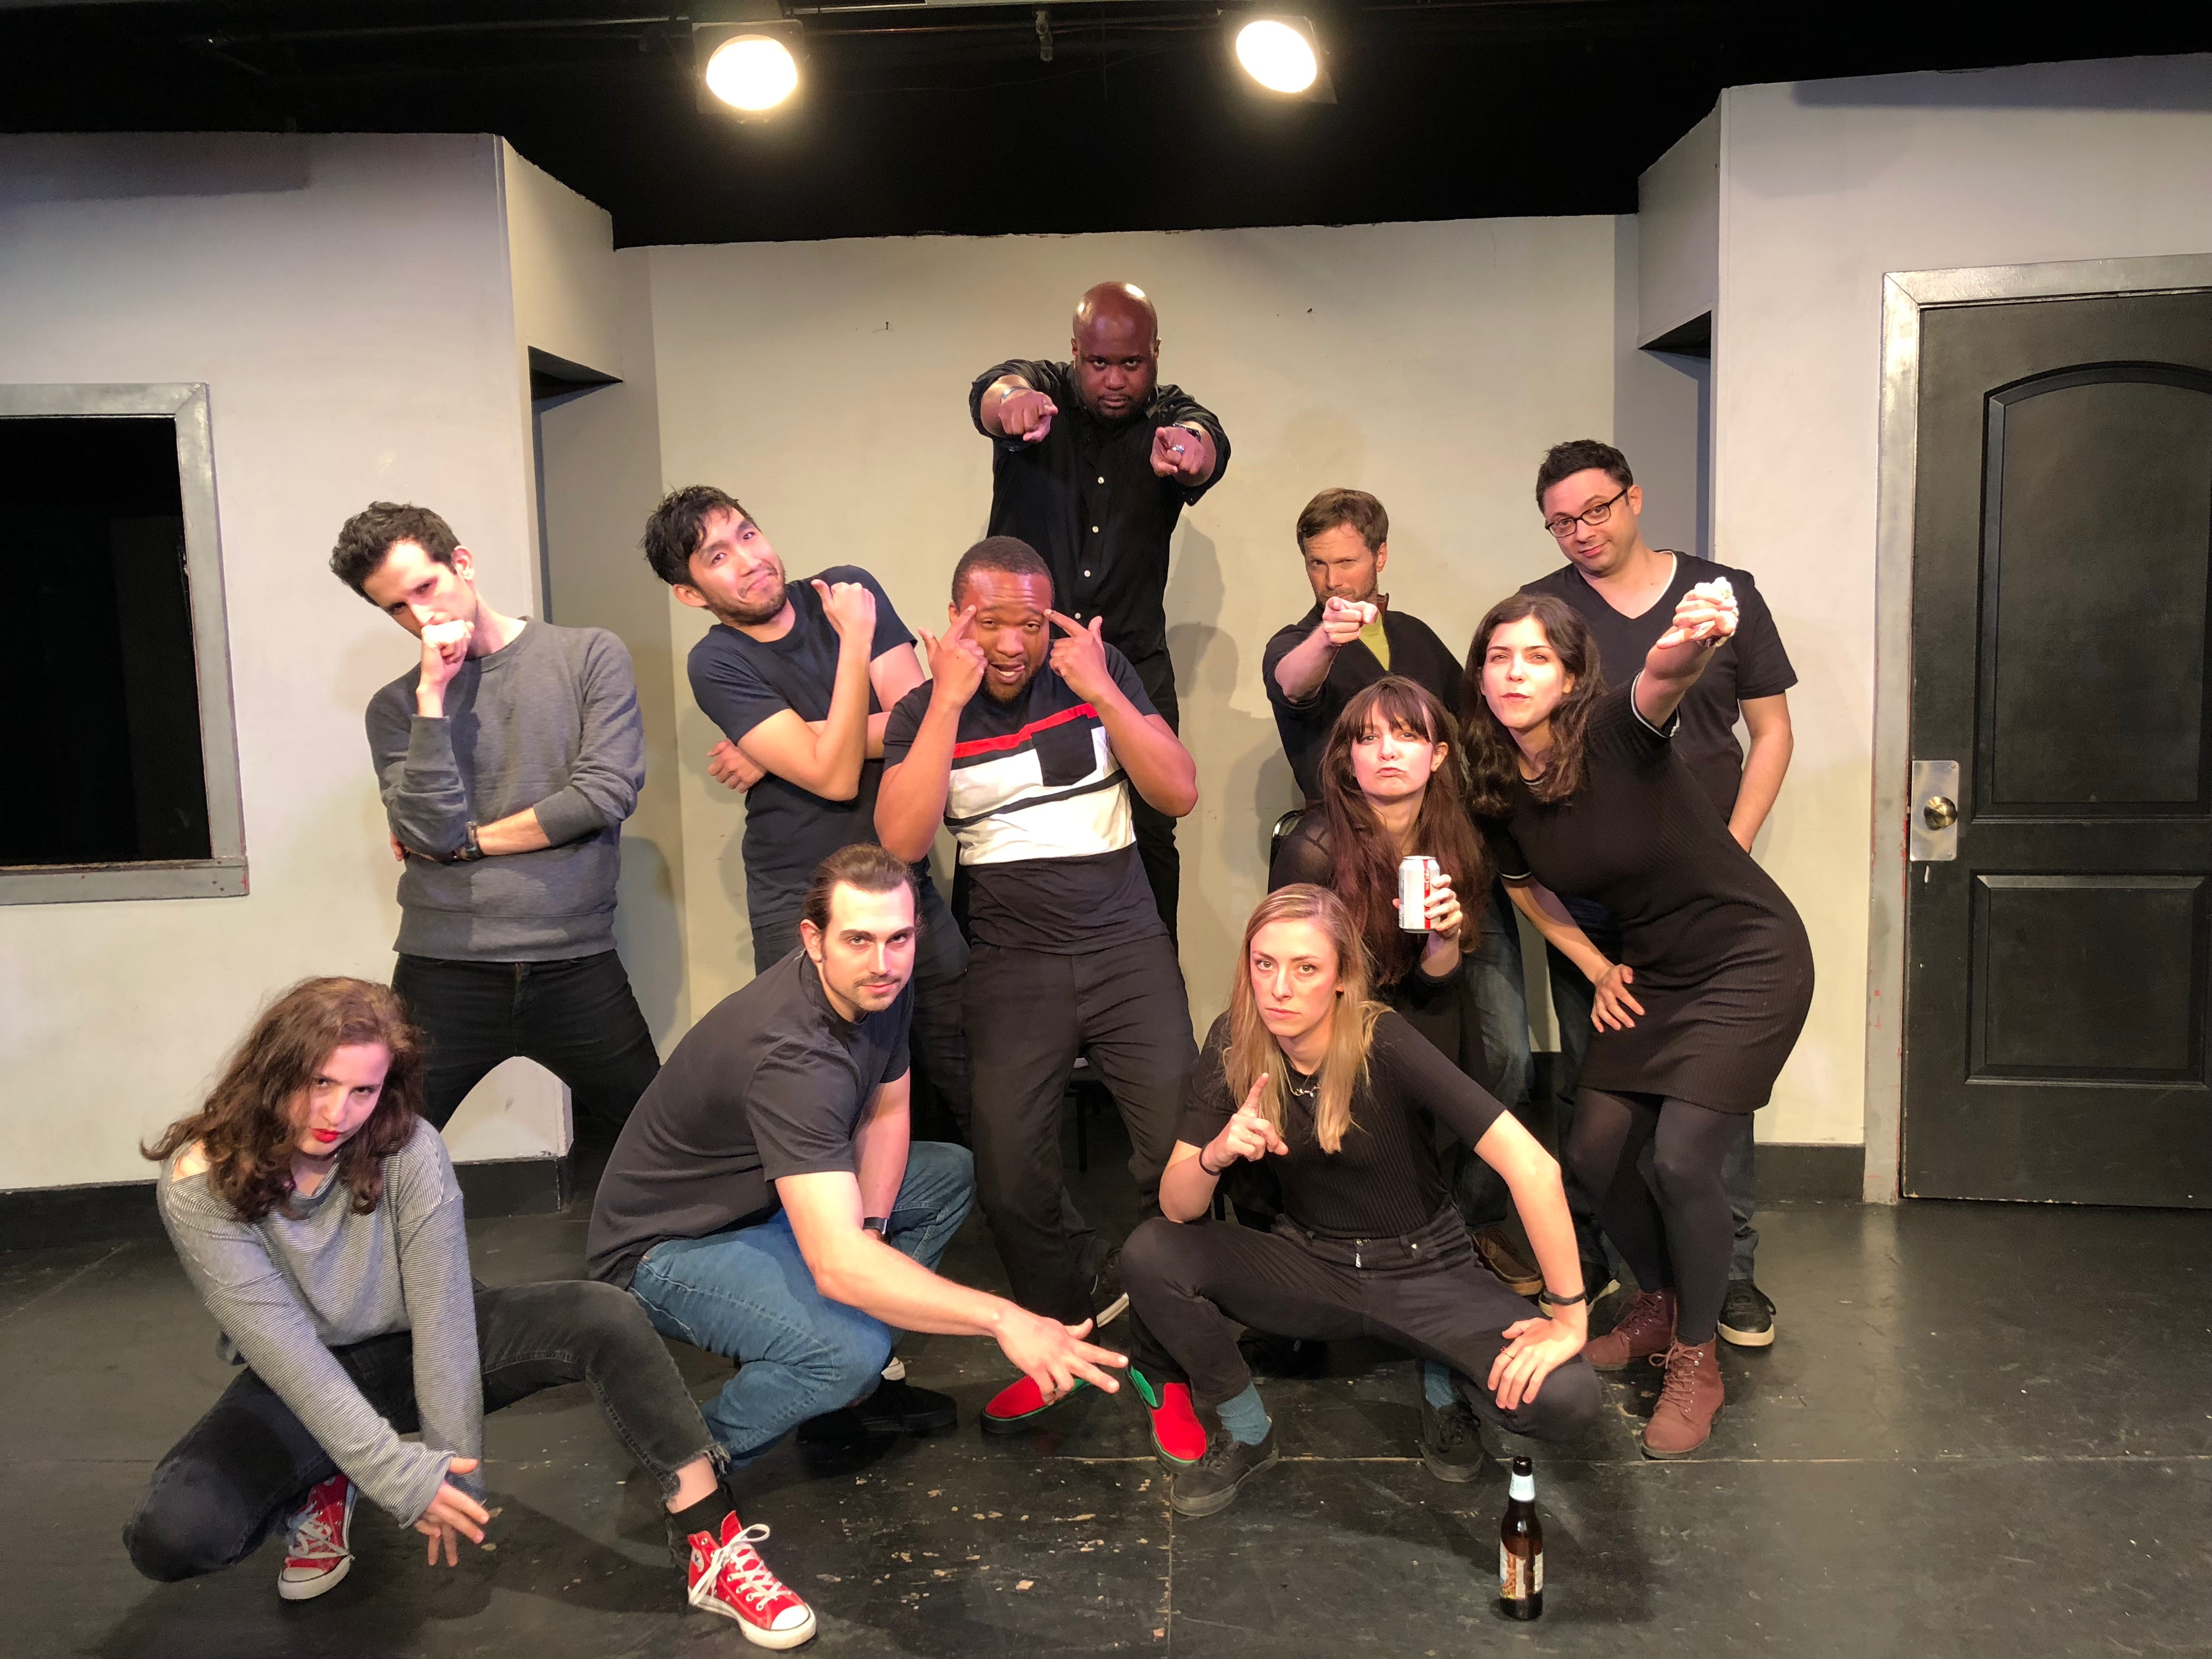 The cast of The Melodrama